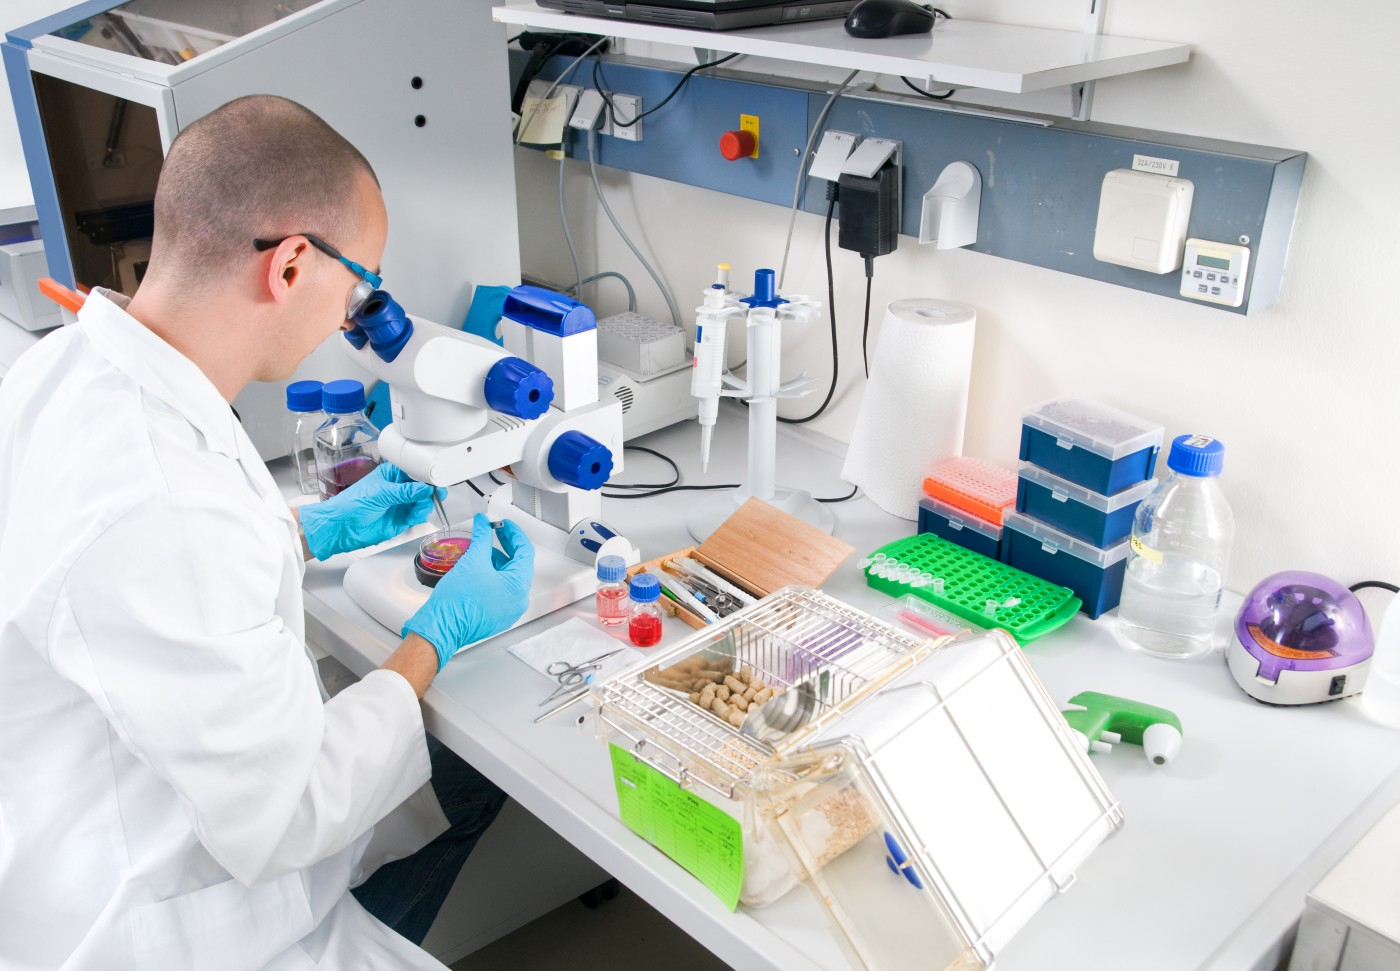 Project on Potential Therapeutic Drug Targets in Spinocerebellar Ataxia Receives Funding